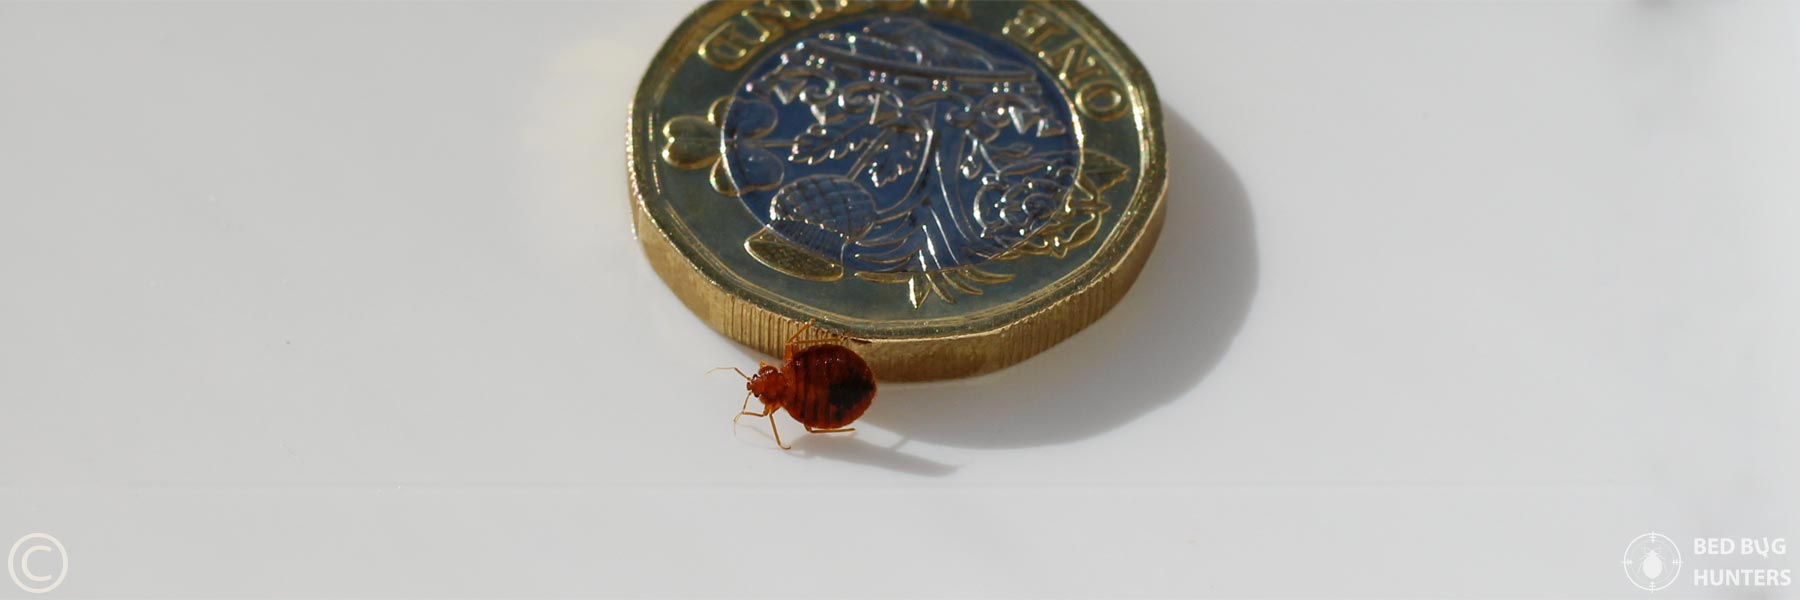 Prices Bed Bugs Pest Control Company In London Providing